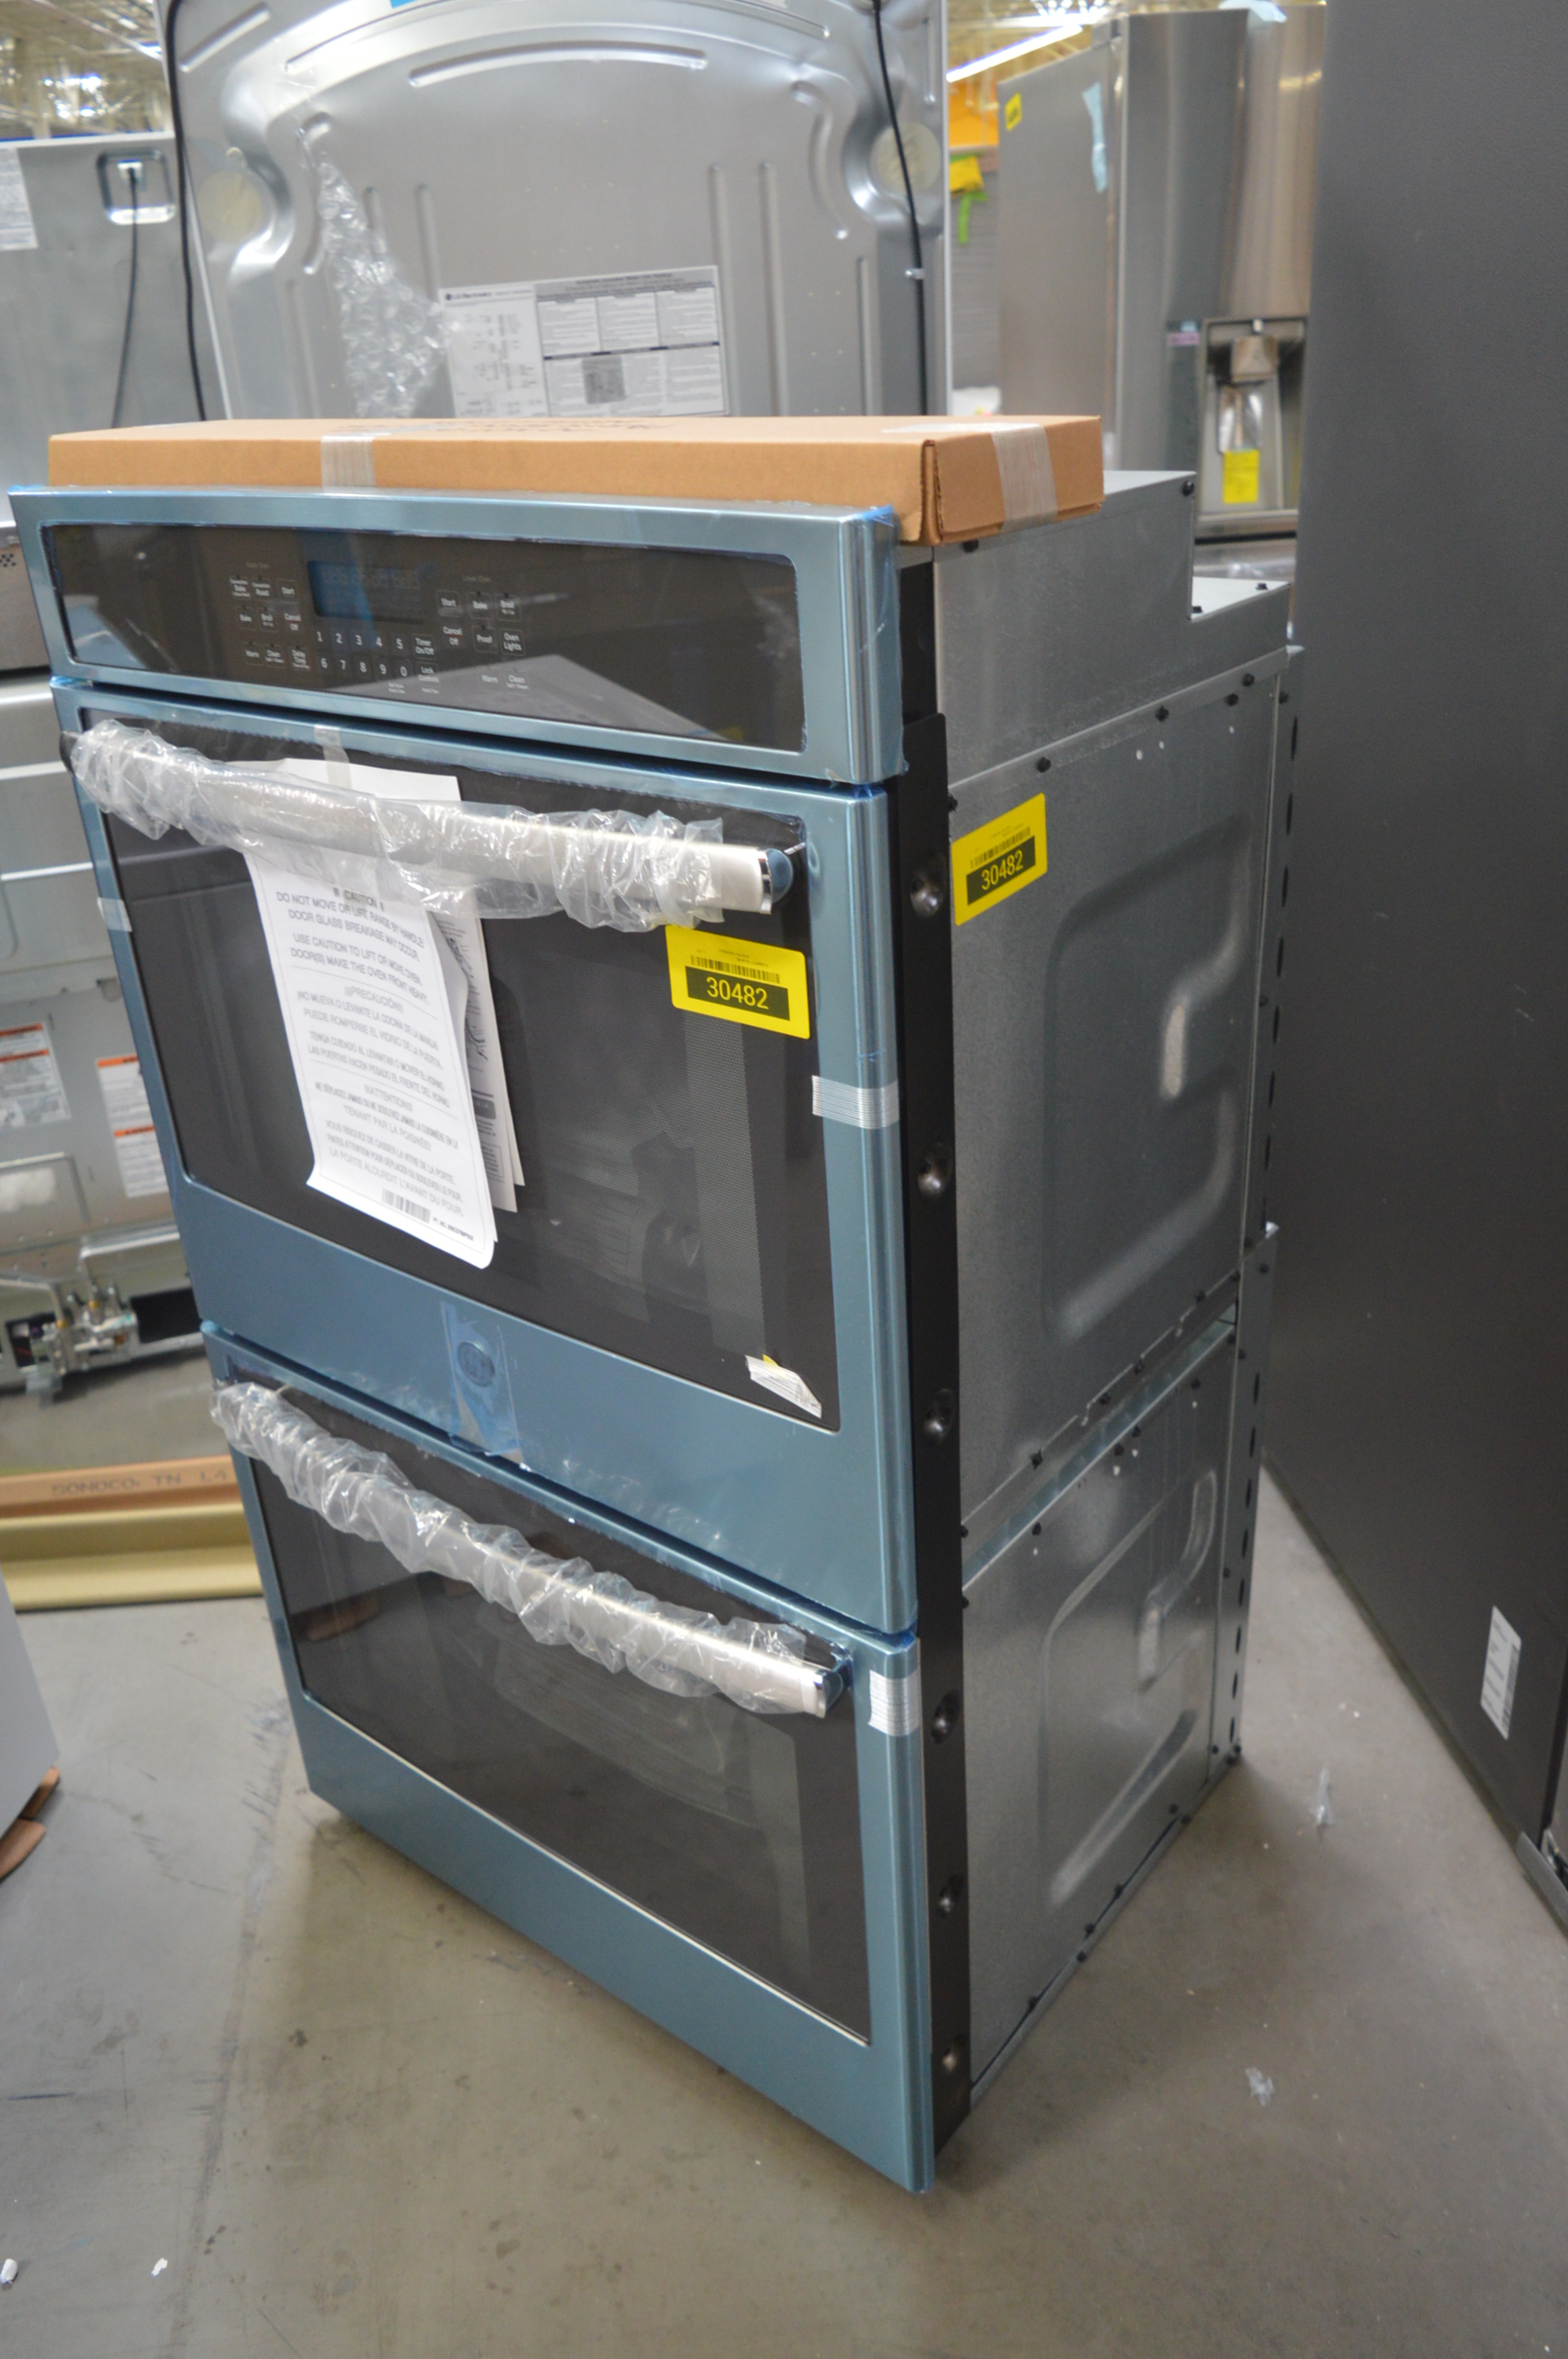 GE JT5500SFSS Double Wall Oven Stainless #30482